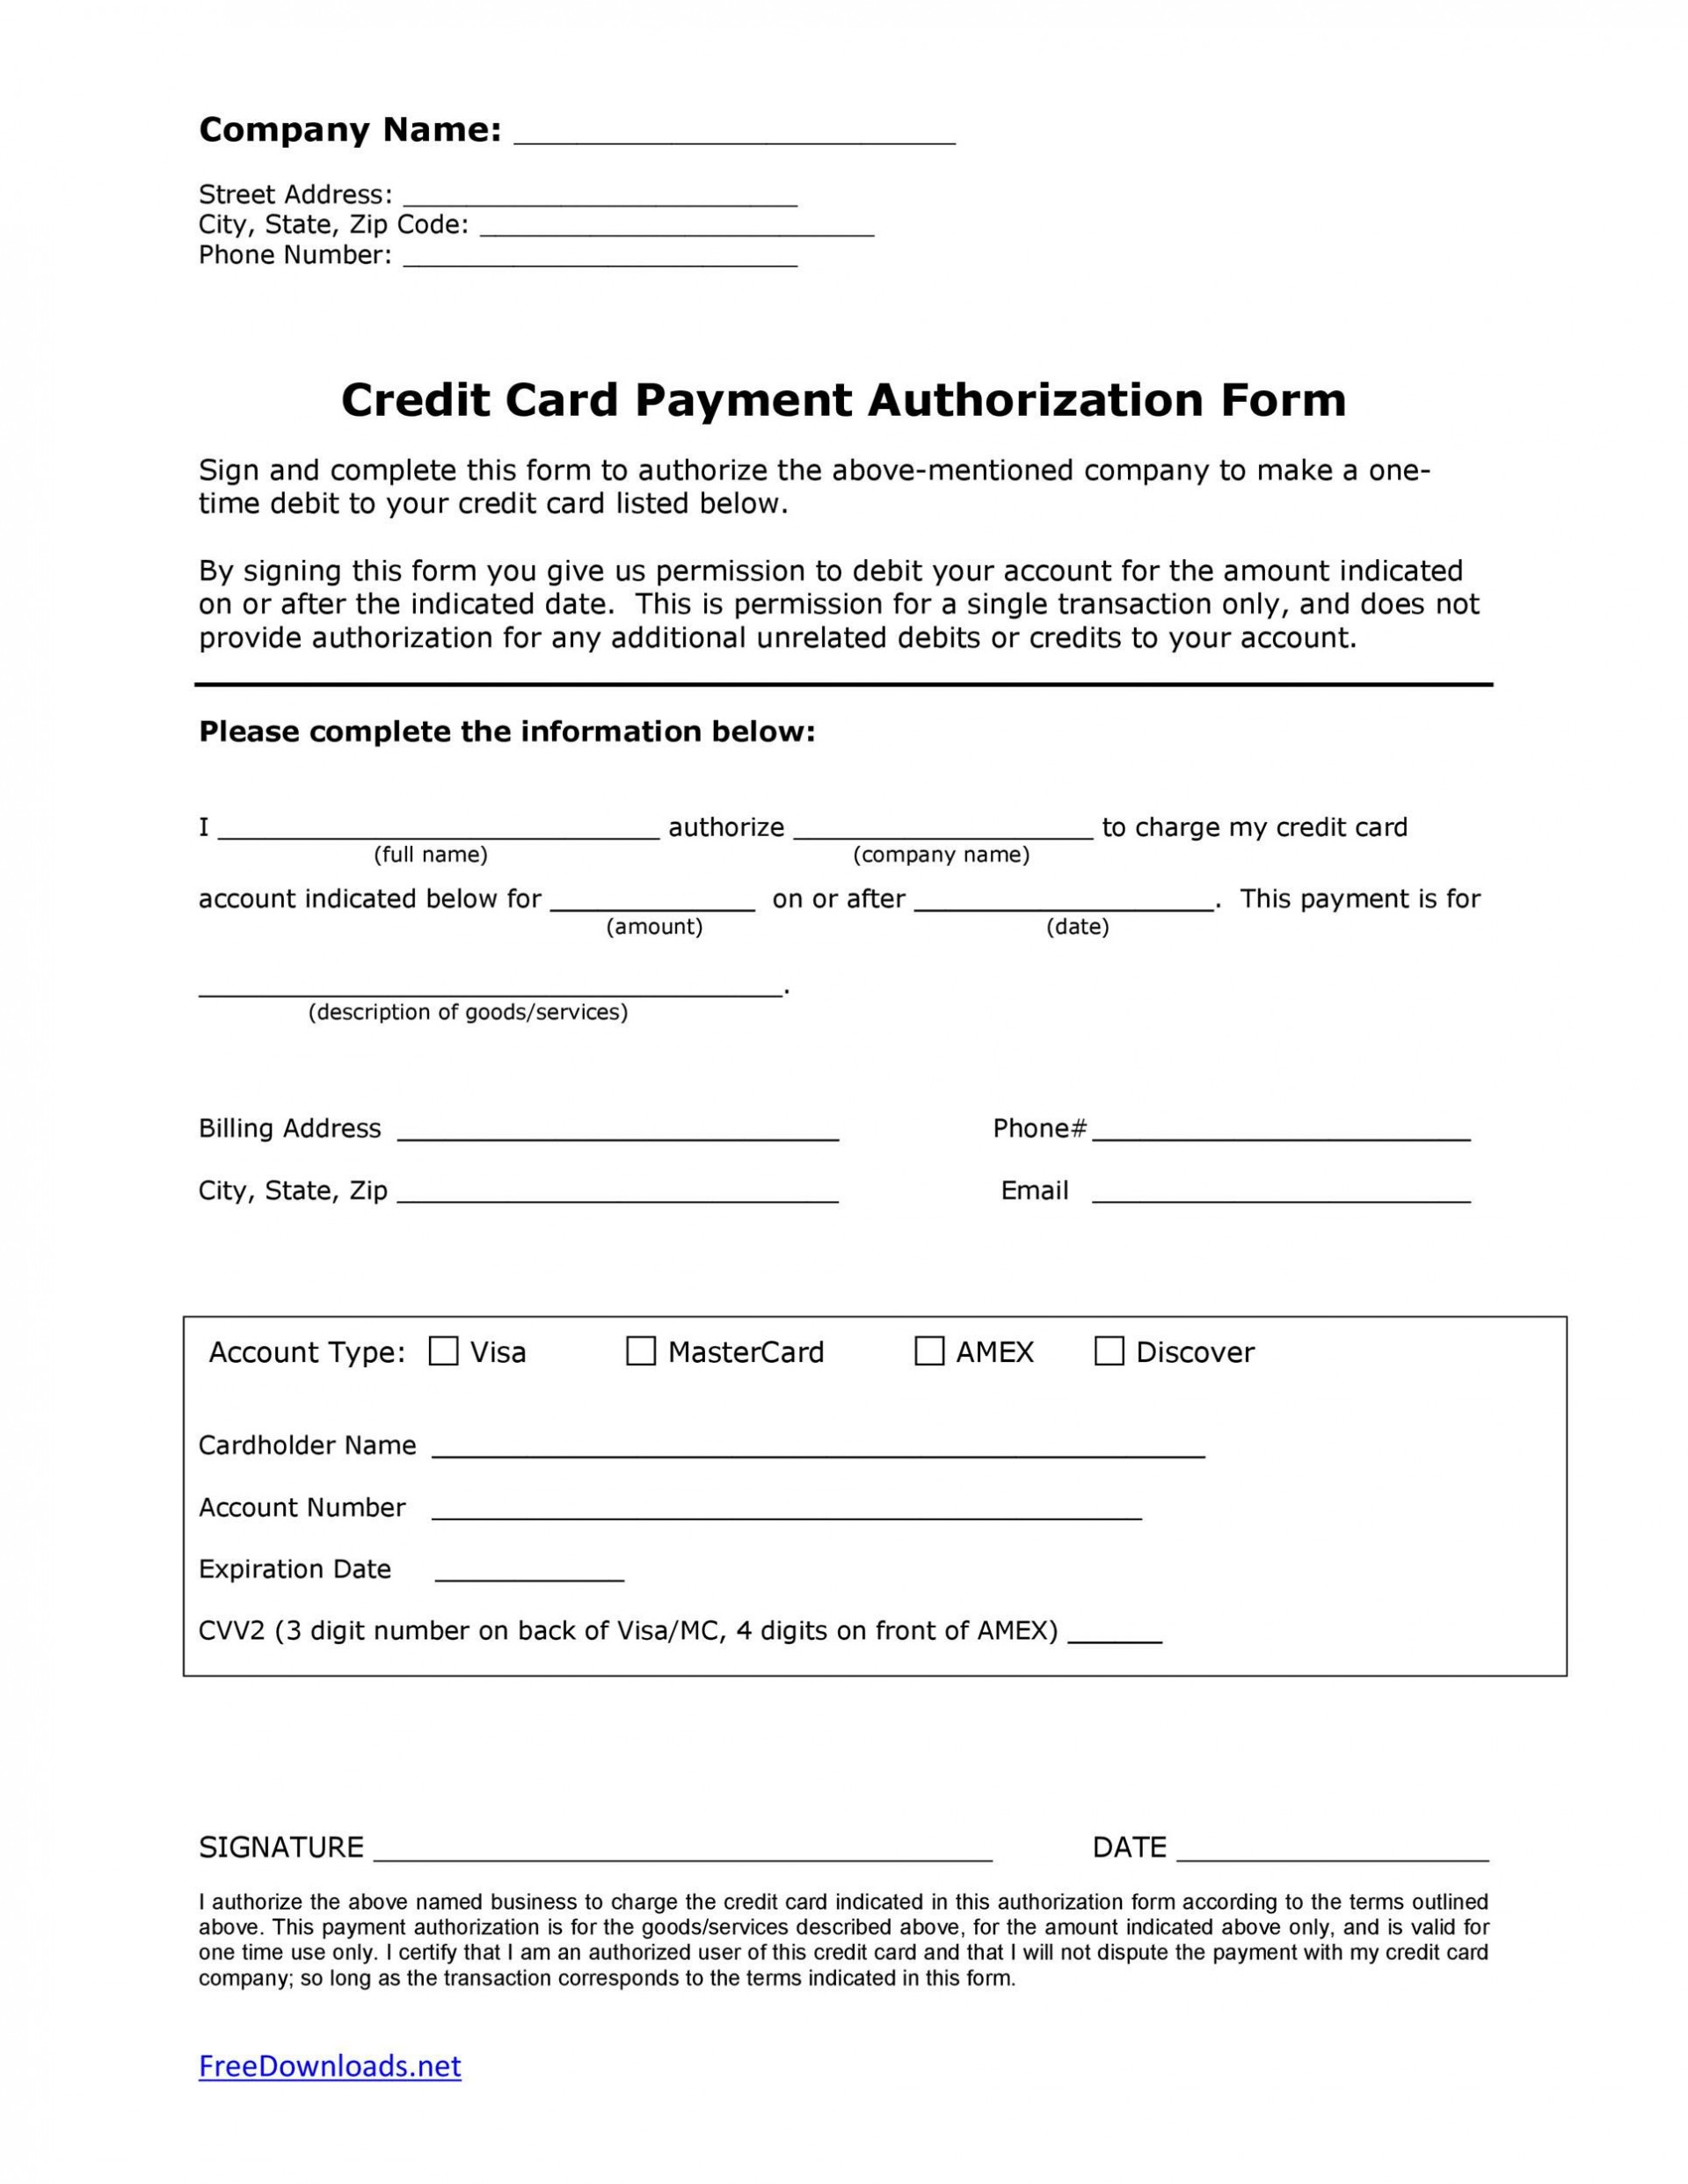 007 Astounding One Time Credit Card Payment Authorization Form Template Example 1920